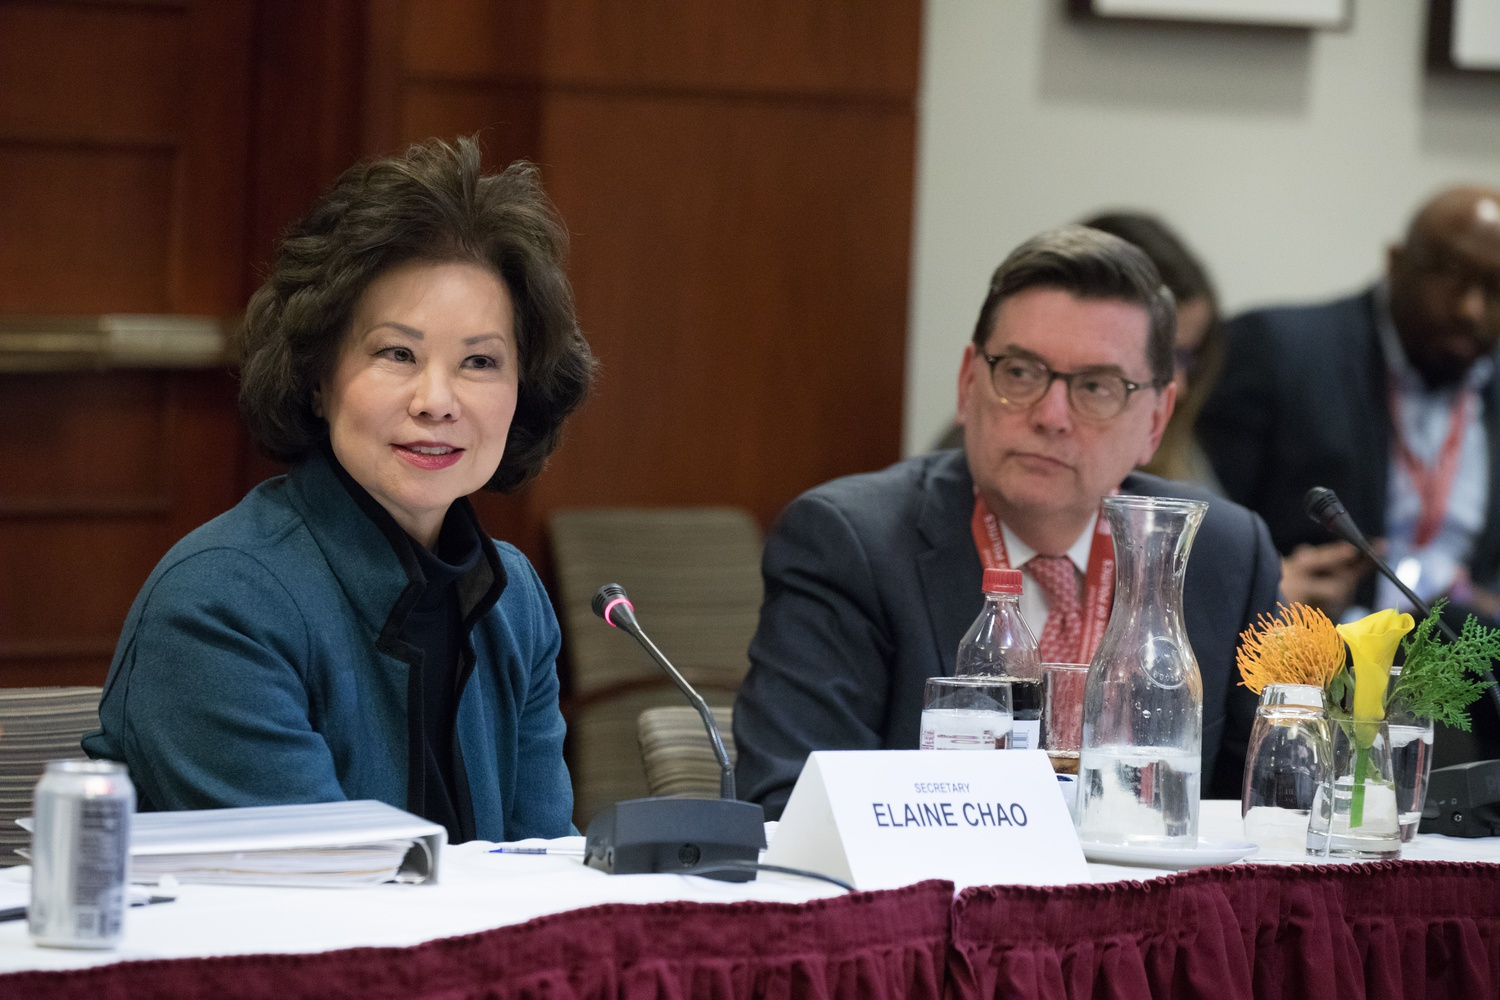 Secretary of Transportation Elaine L. Chao and IOP Director Mark D. Gearan '78 address new members of Congress on the first day of the bipartisan orientation program.